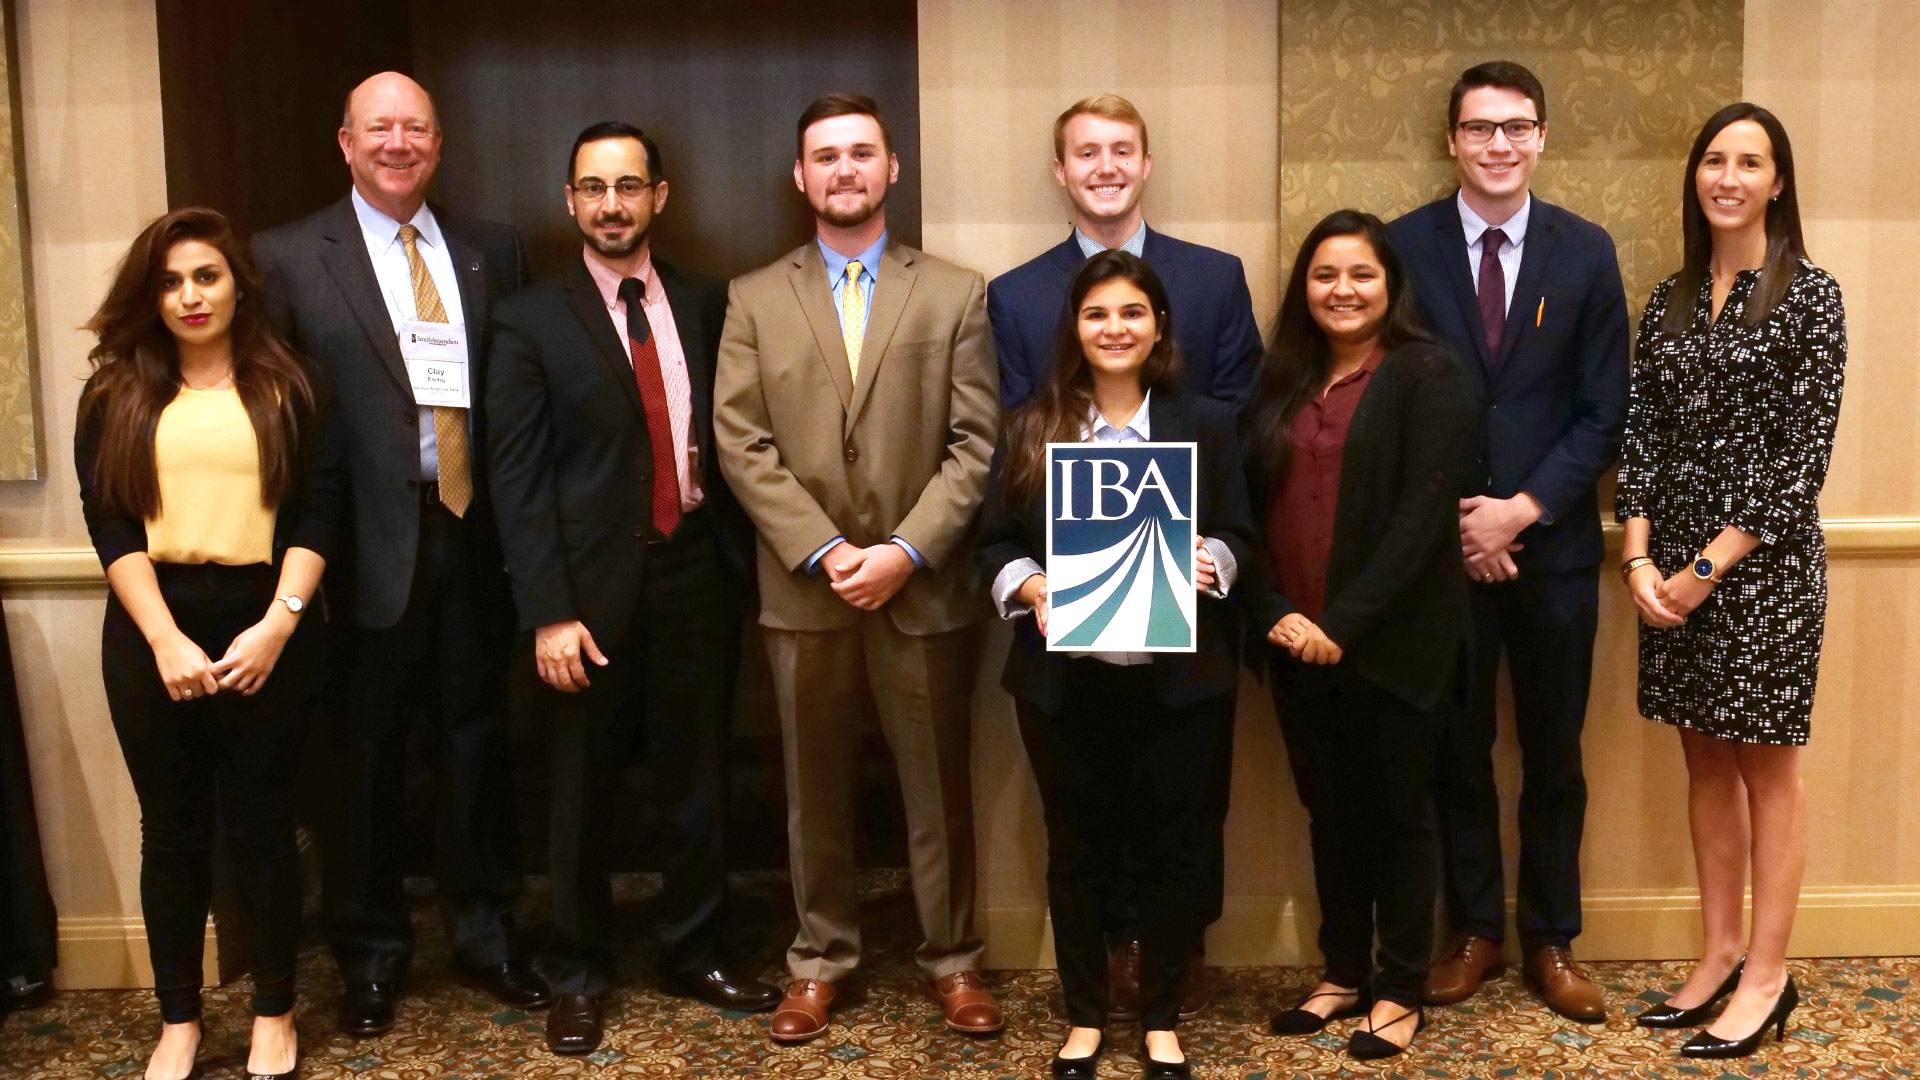 Schroeder students to attend the 2018 IBA Annual Convection